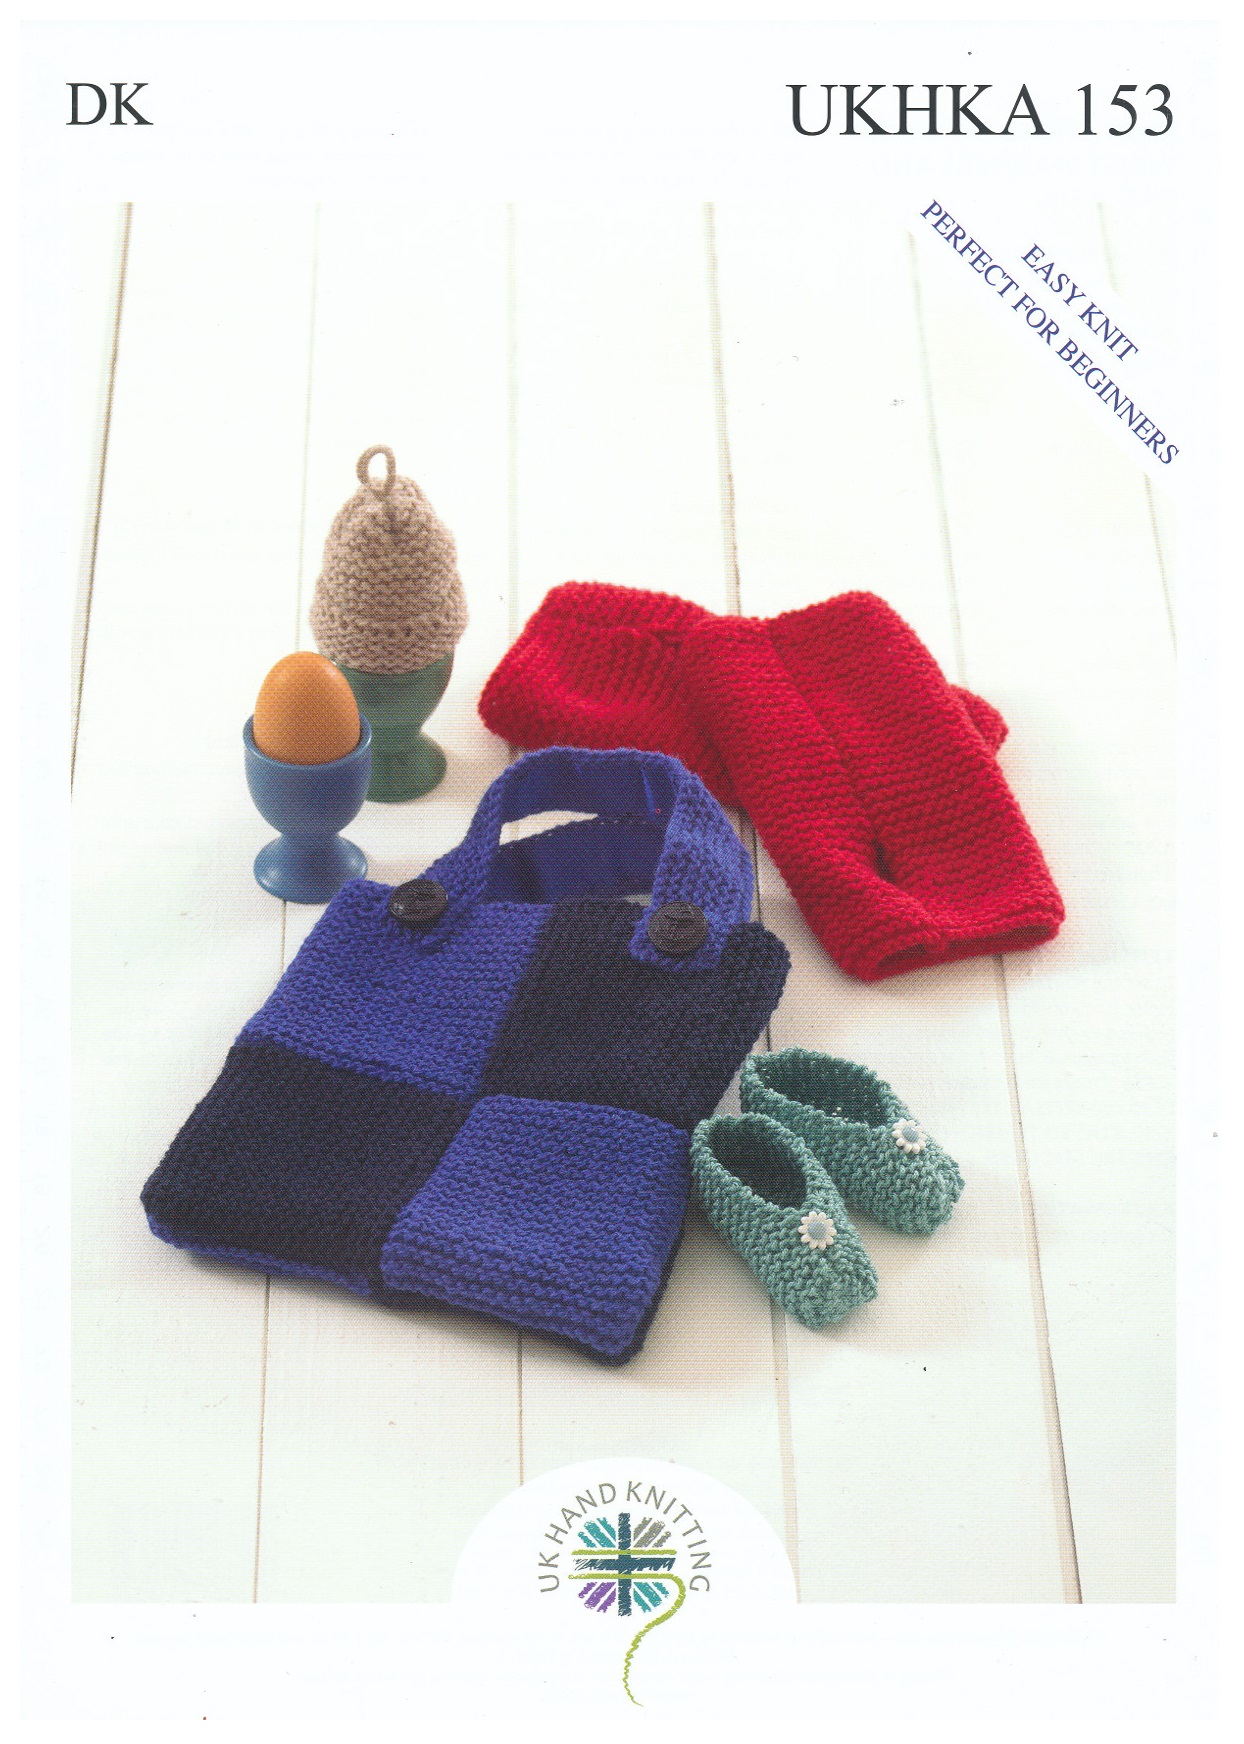 Egg Cosy Wrist Warmers /& Bag DK Knitting Pattern UKHKA153 Baby Shoes